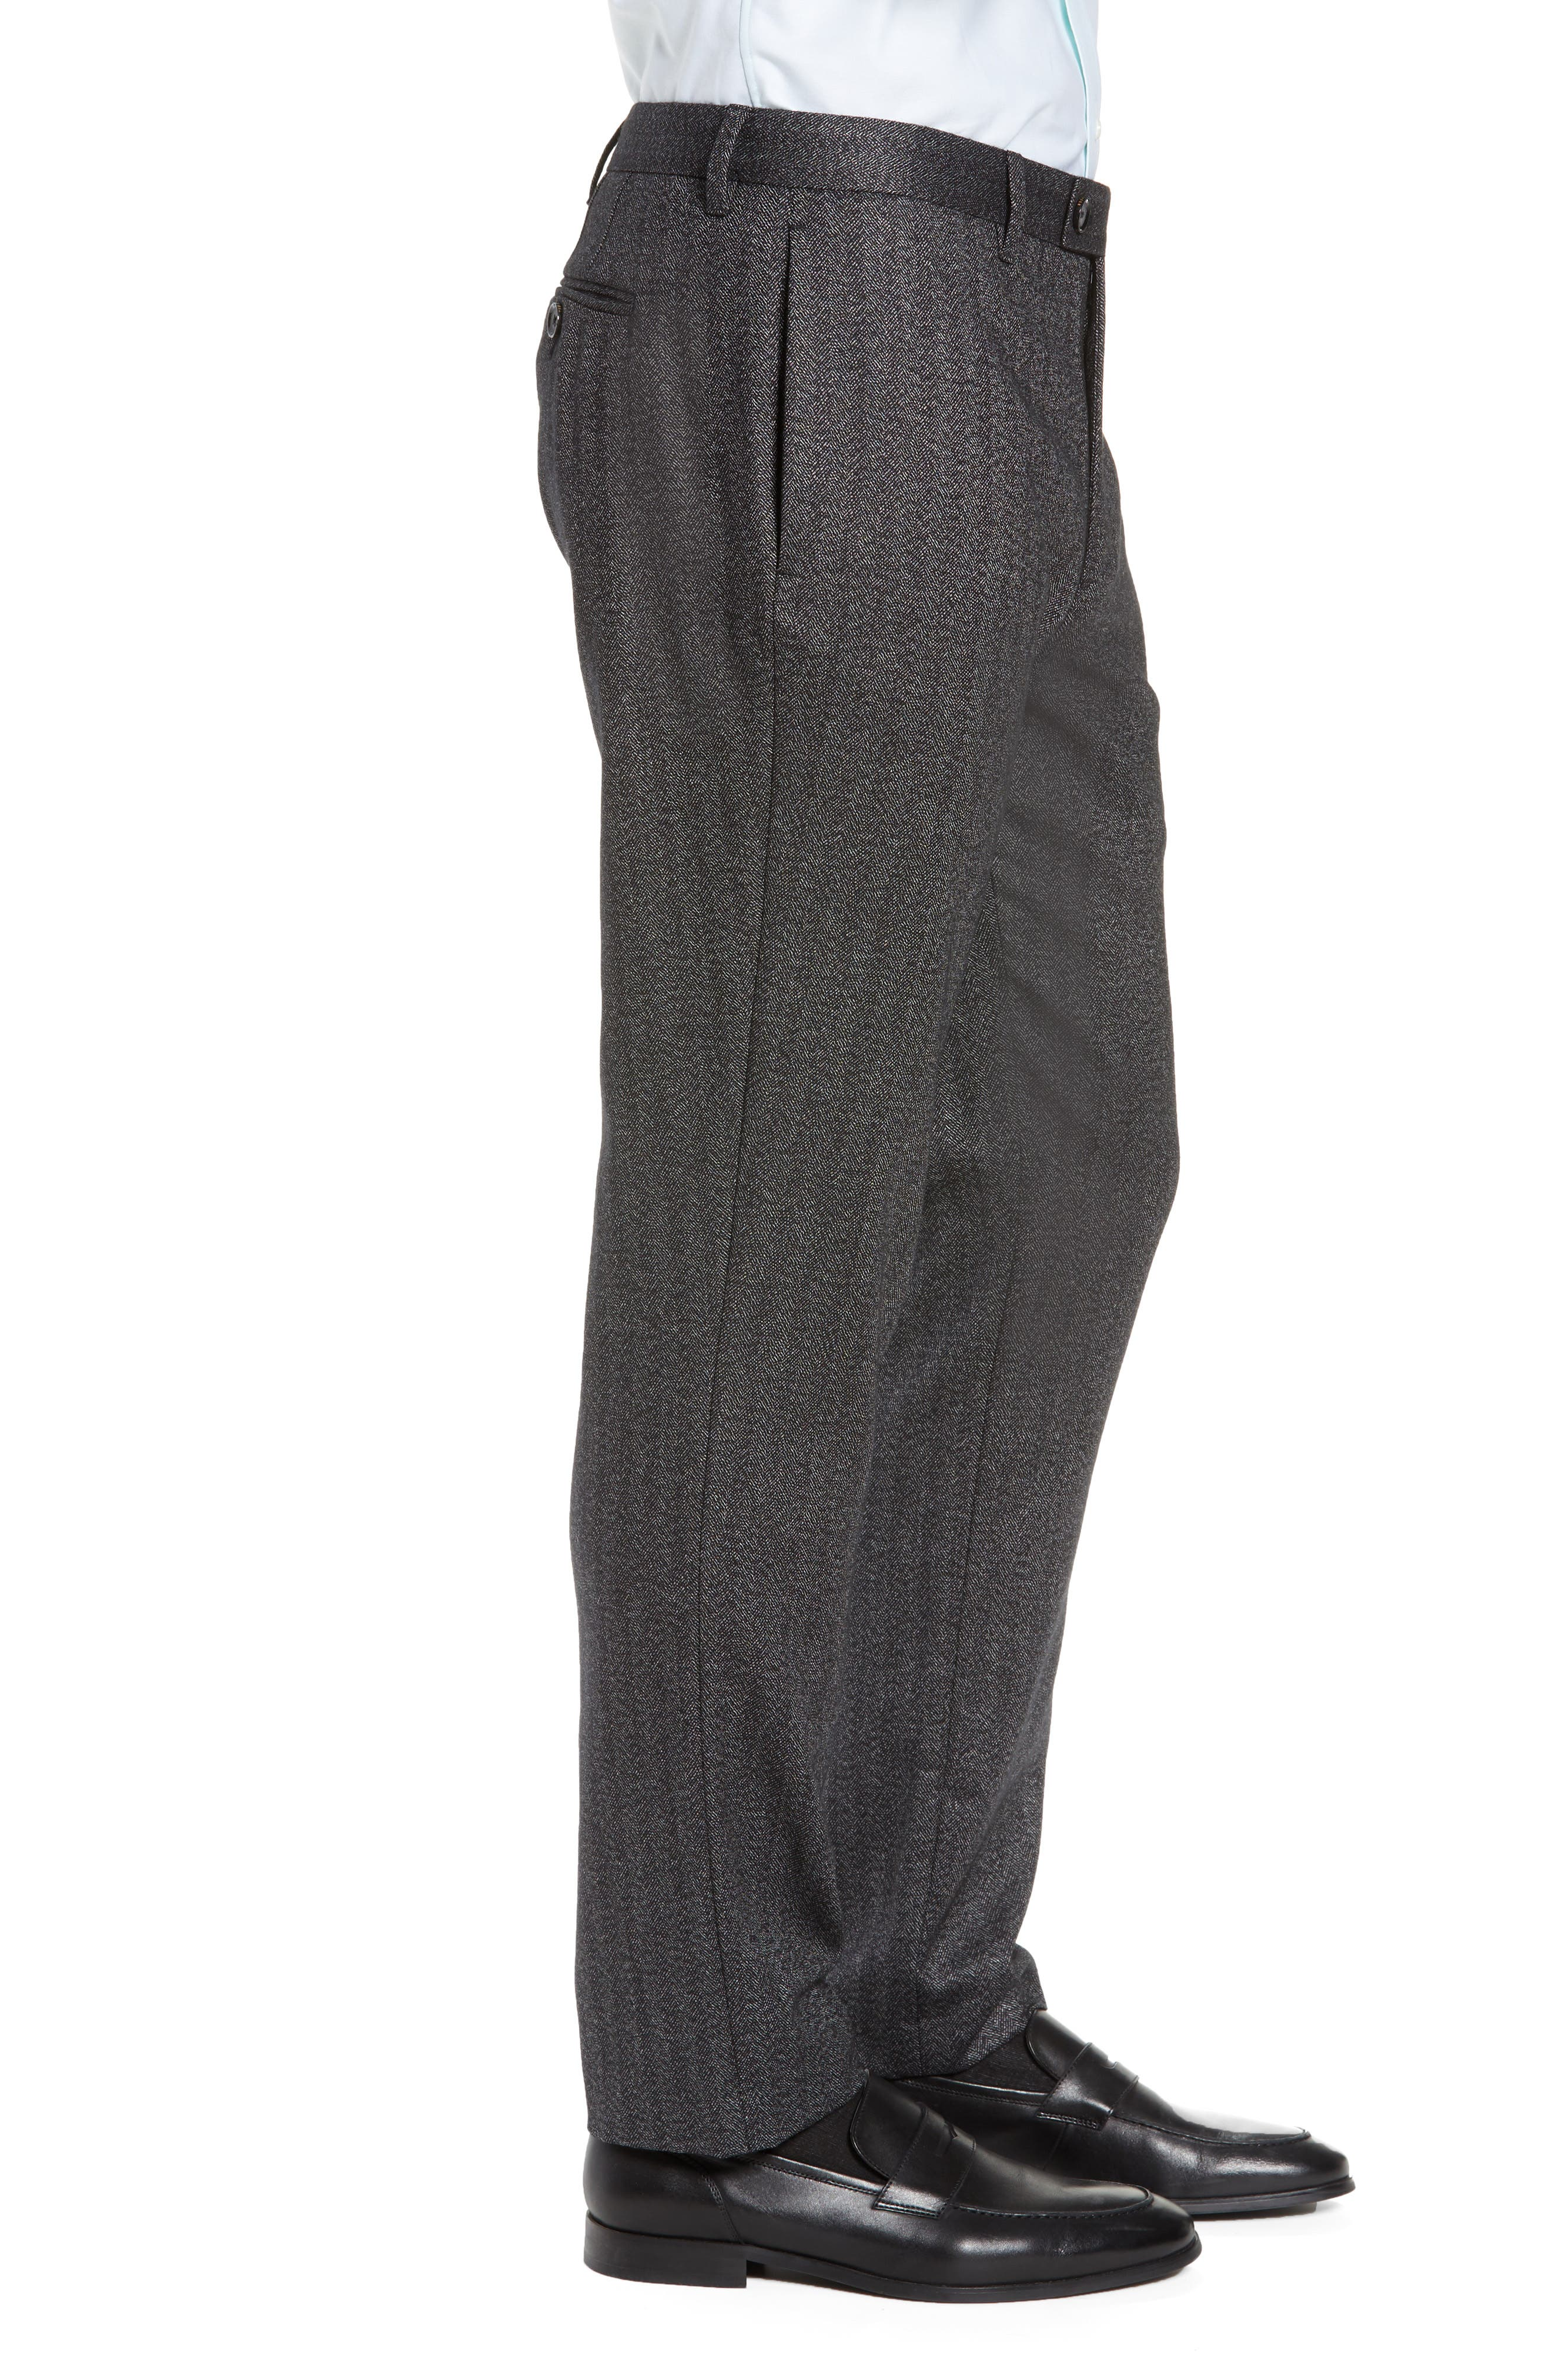 Wenstro Classic Fit Trousers,                             Alternate thumbnail 3, color,                             020